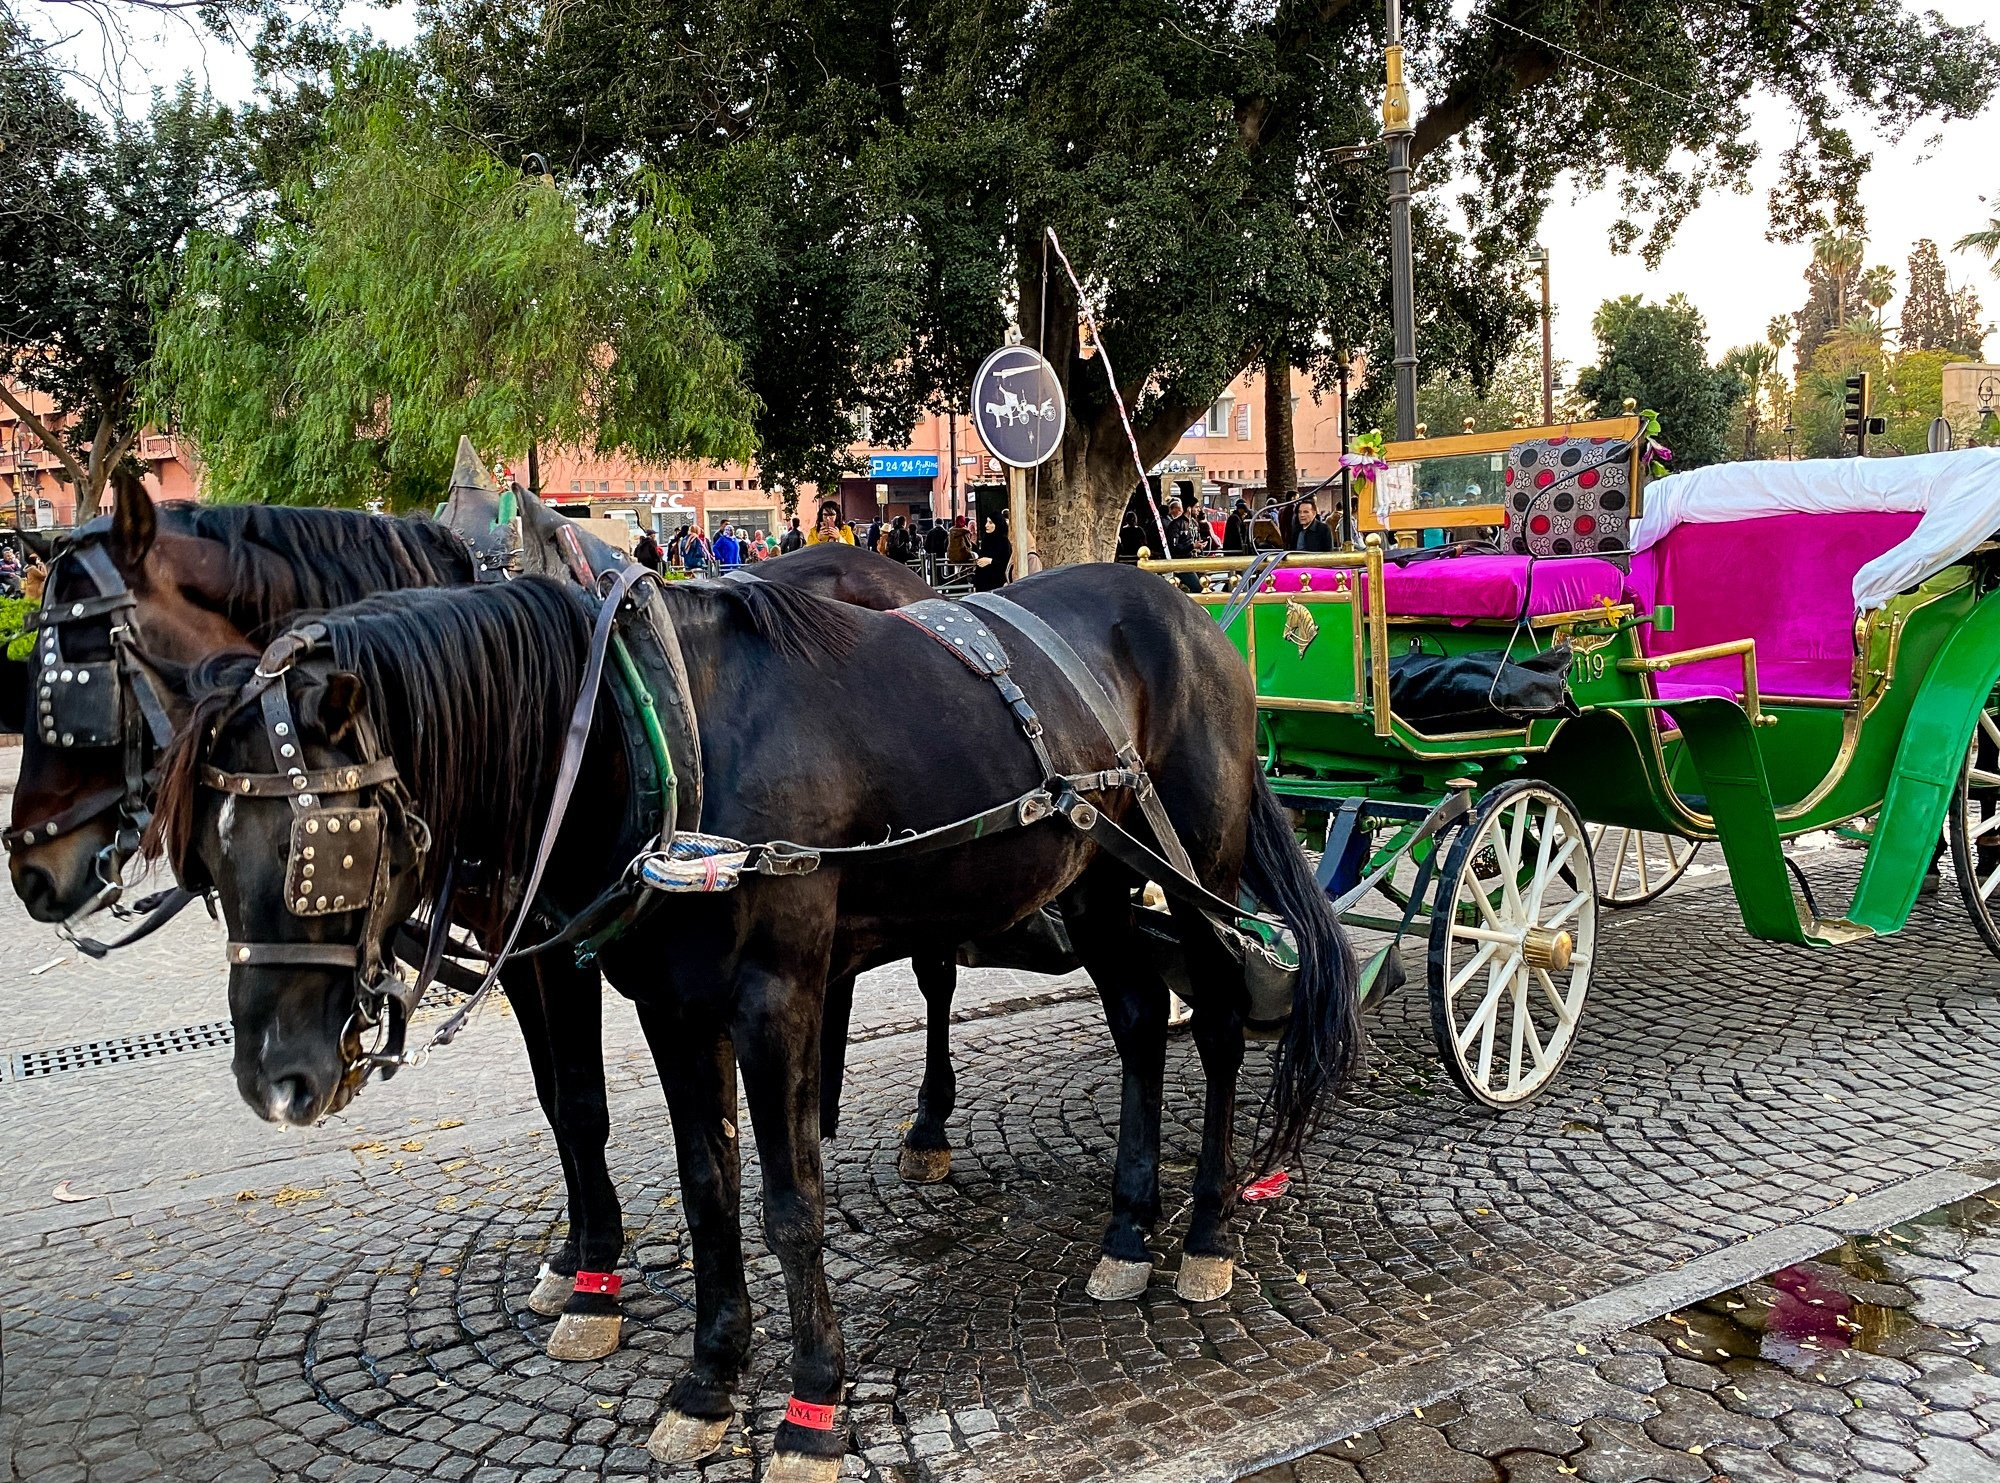 Horse drawn carriage in the Marrakech medina